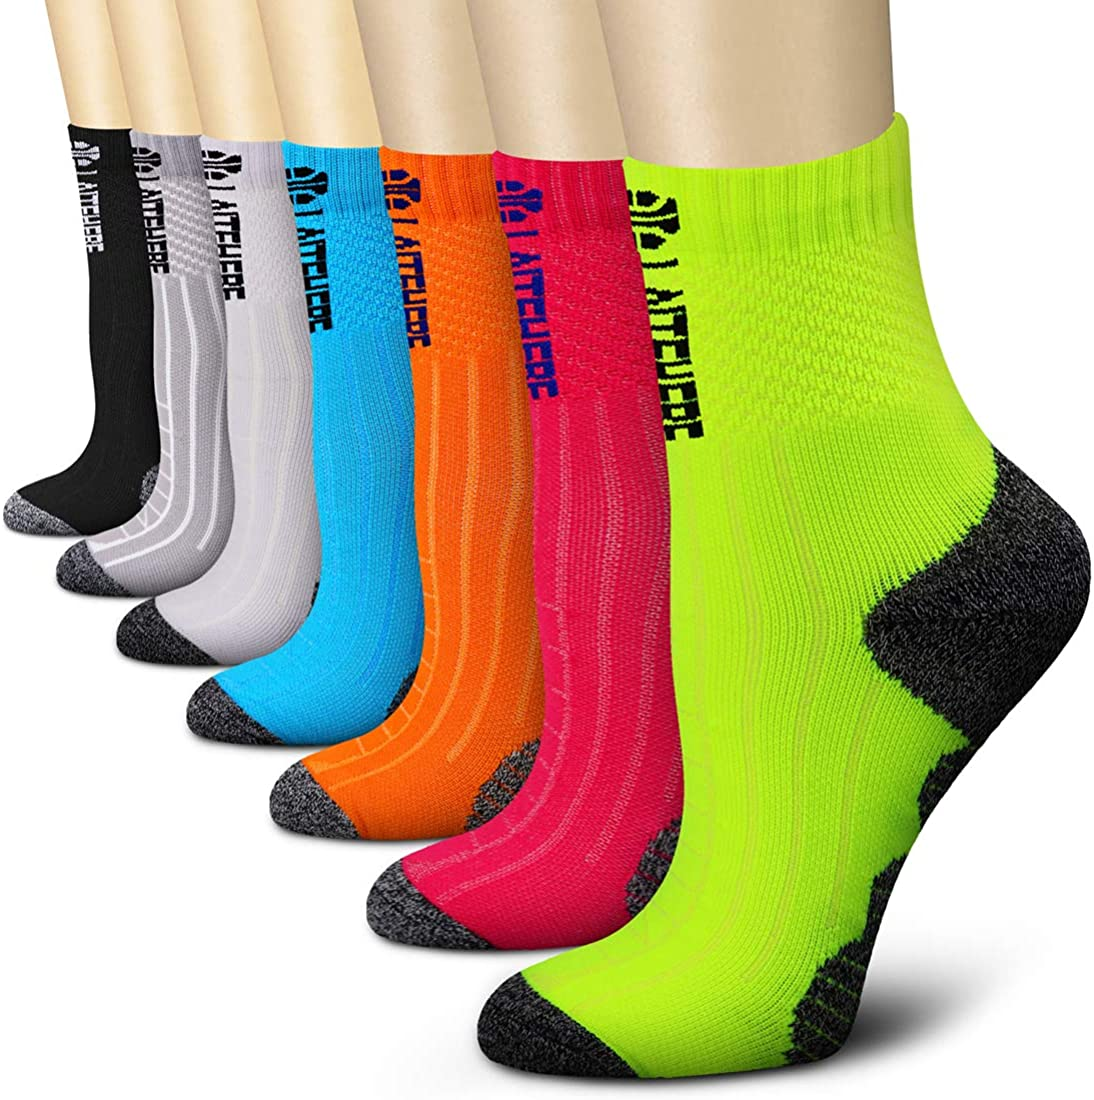 CHARMKING Compression Socks for Women Free shipping on posting reviews Men 7 6 Max 60% OFF P 3 Circulation